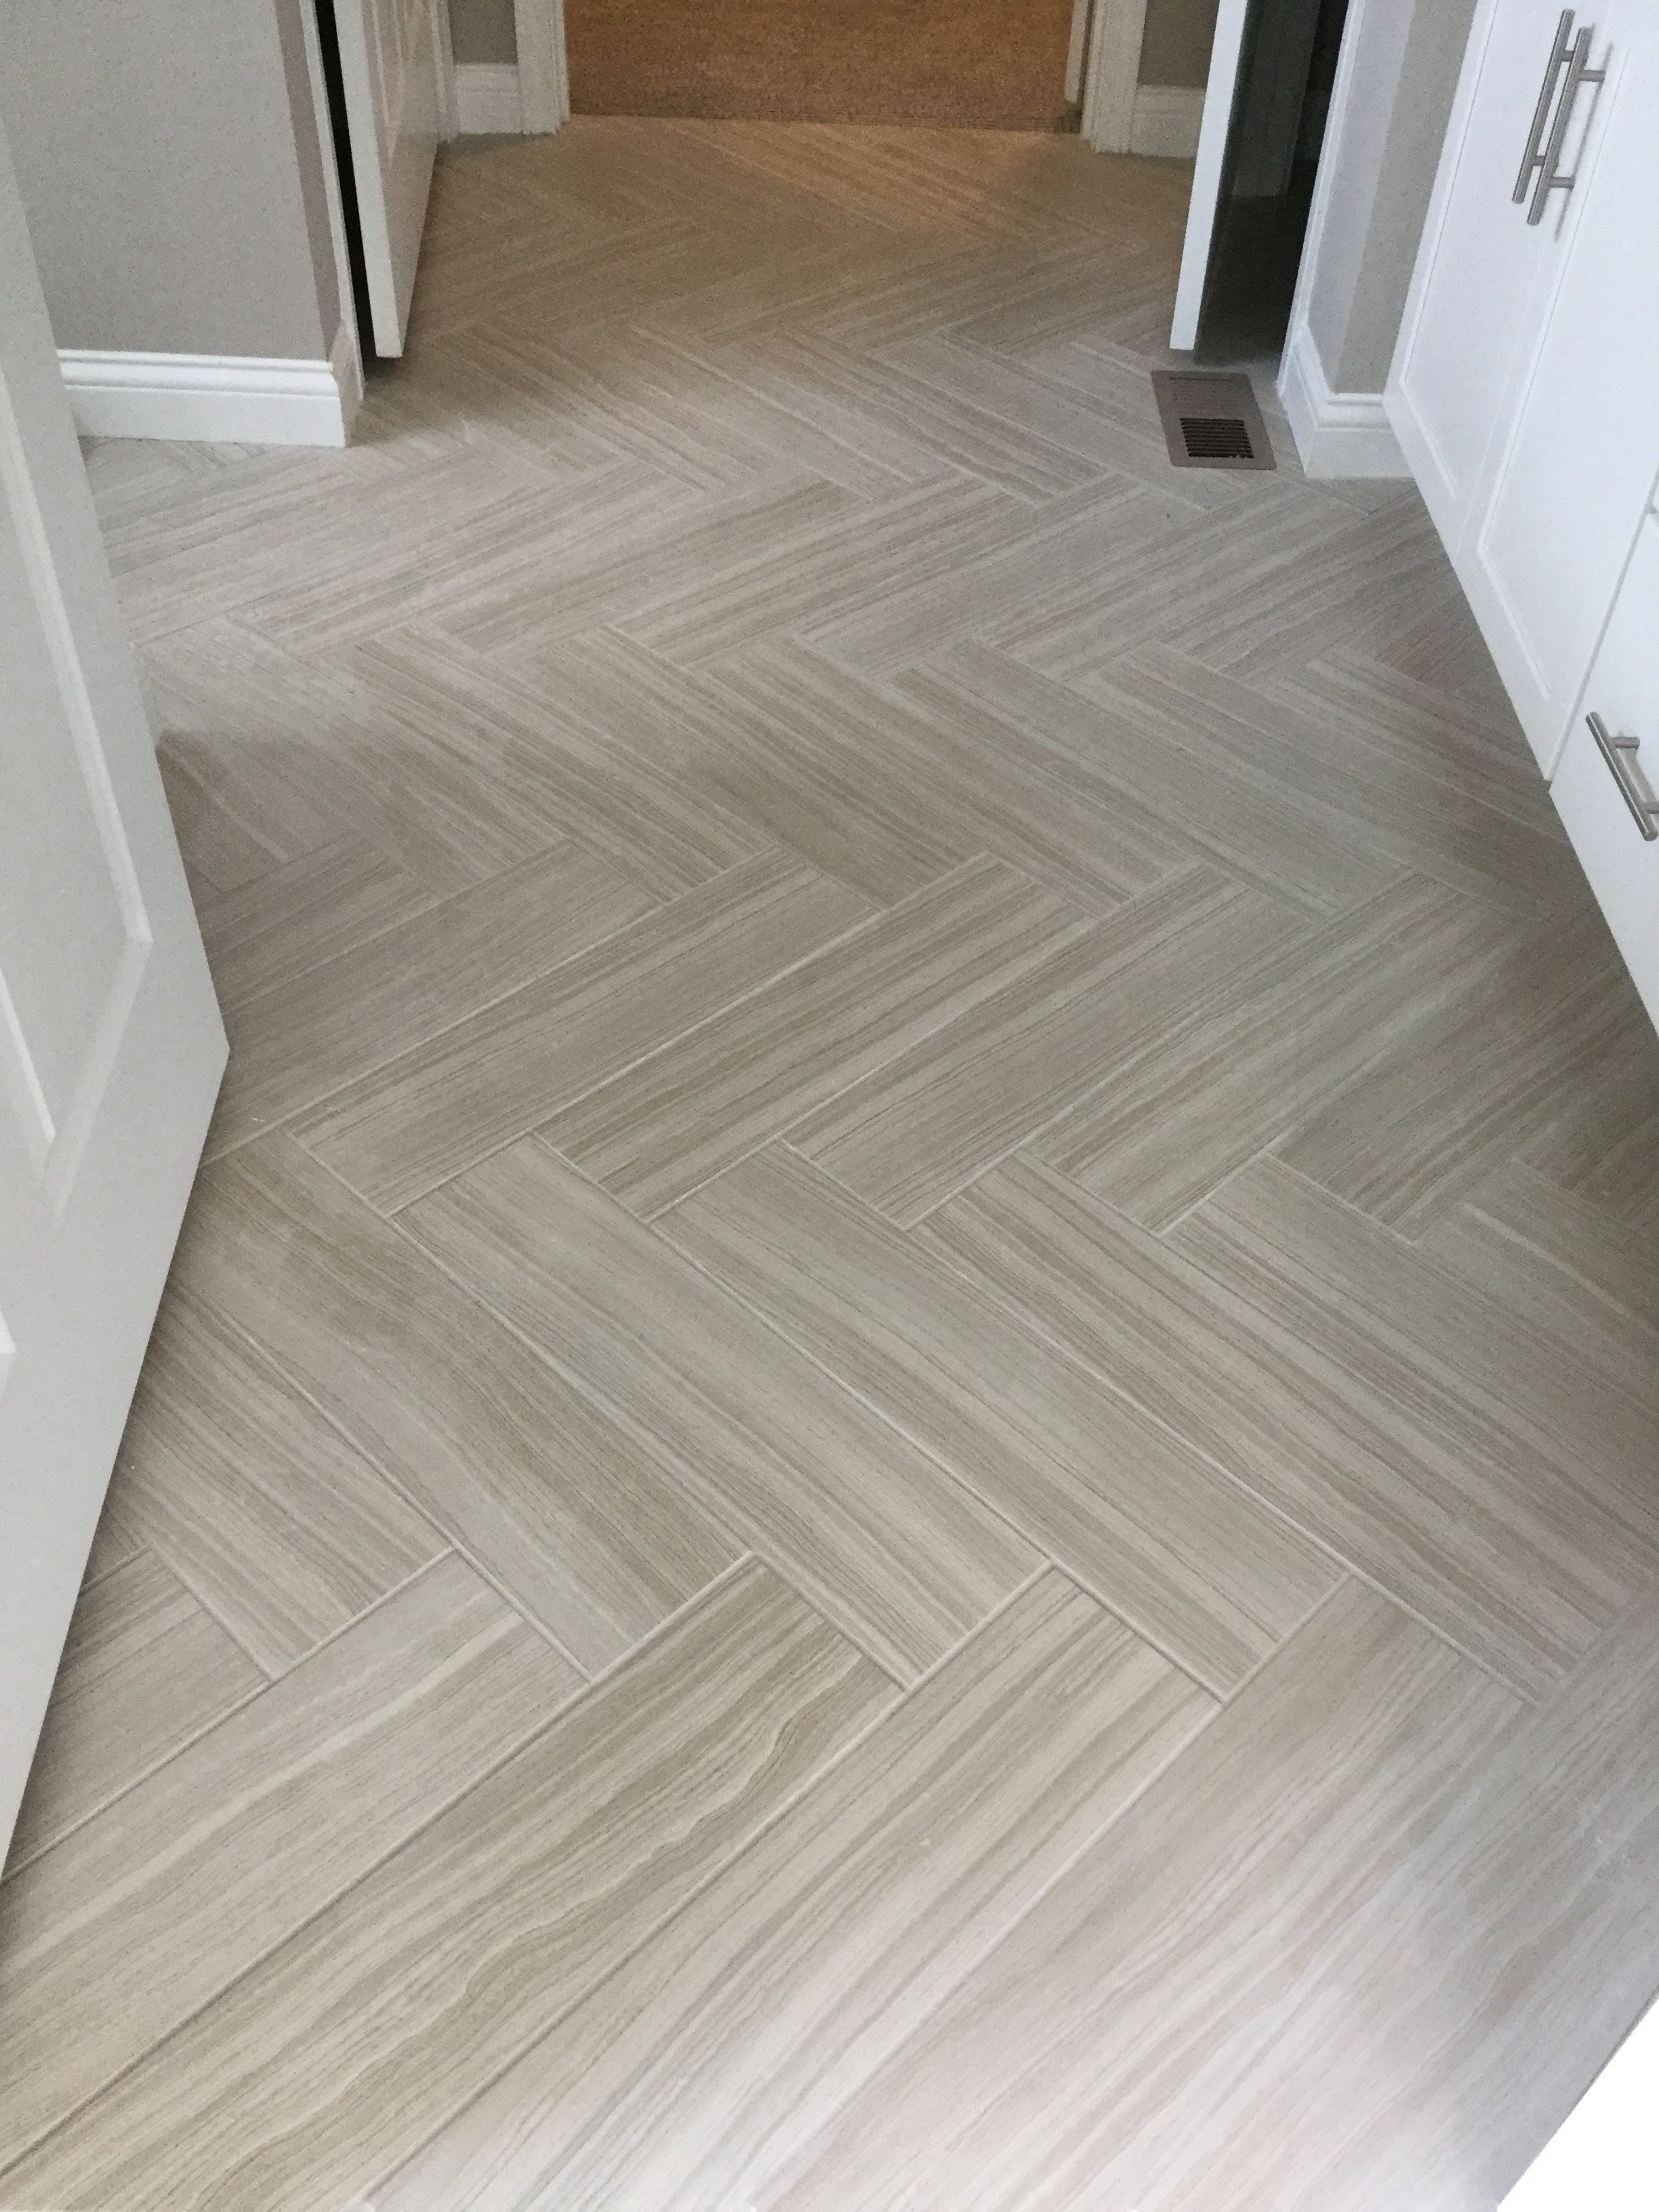 herringbone bathroom floor tile santino bianco 6x24 tiles in herringbone pattern on floor 18701